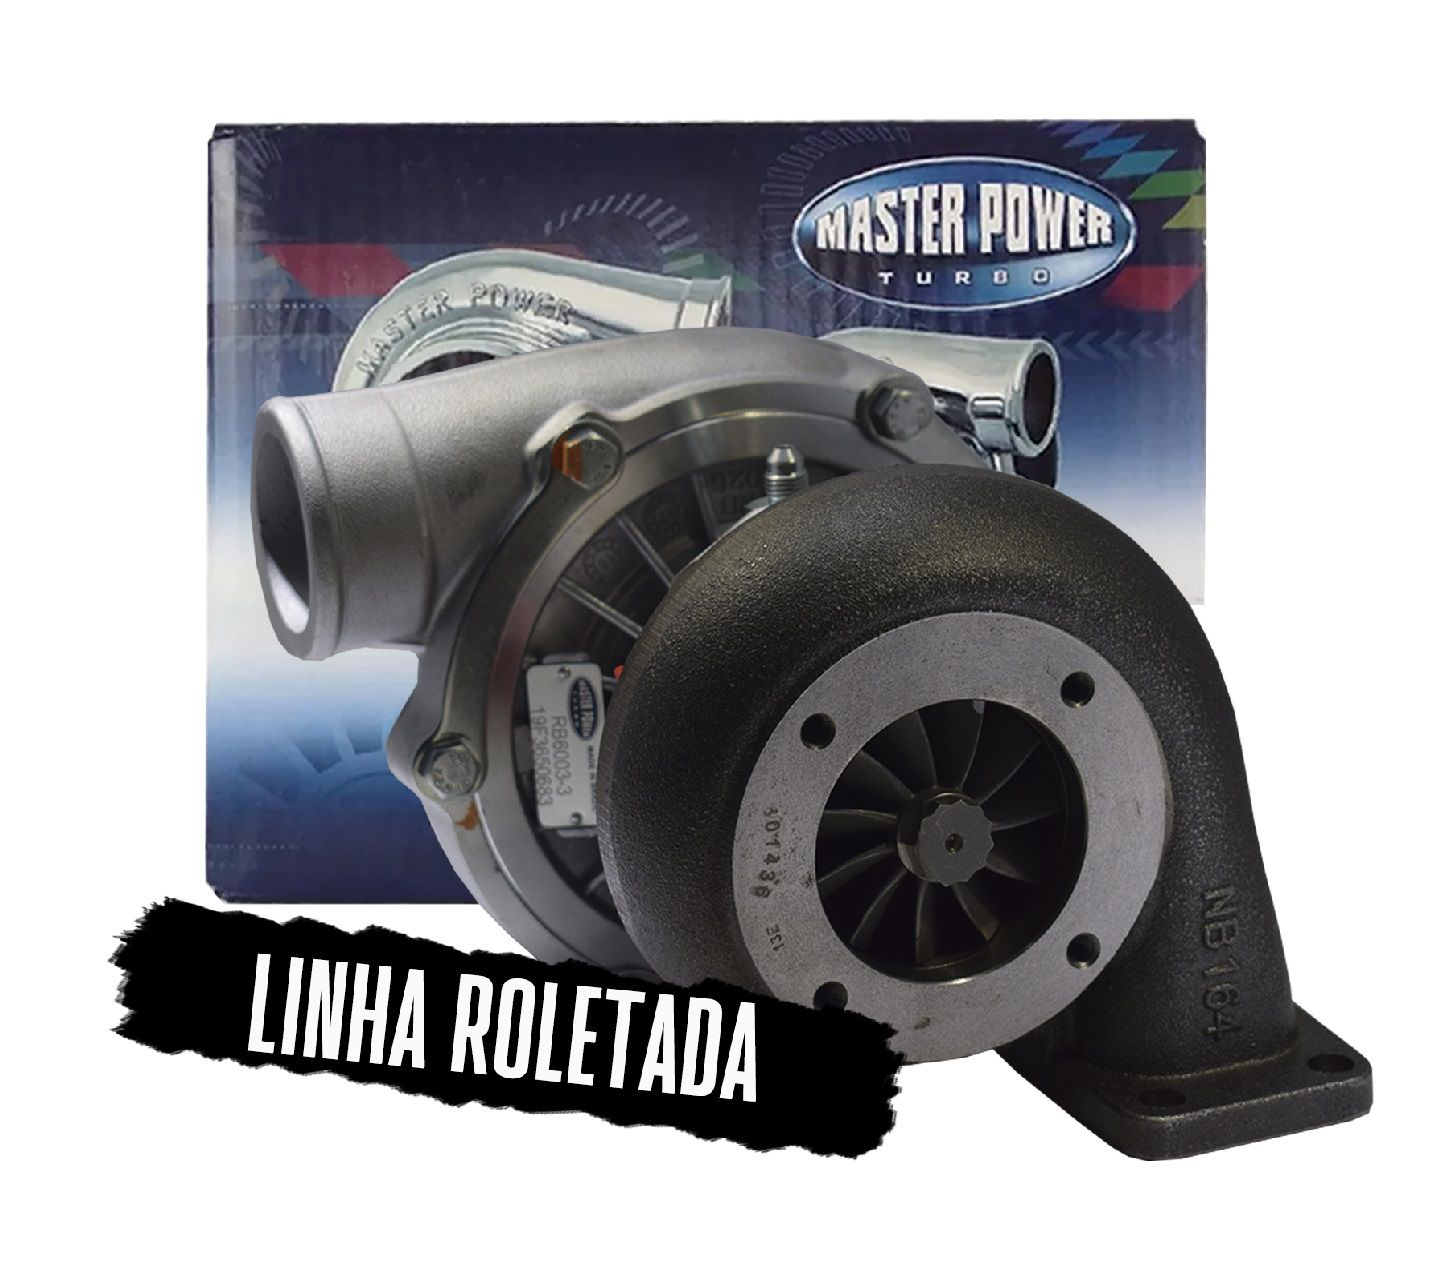 Turbina Roletada /bearing Rb 6003 .94 Mono Master Power